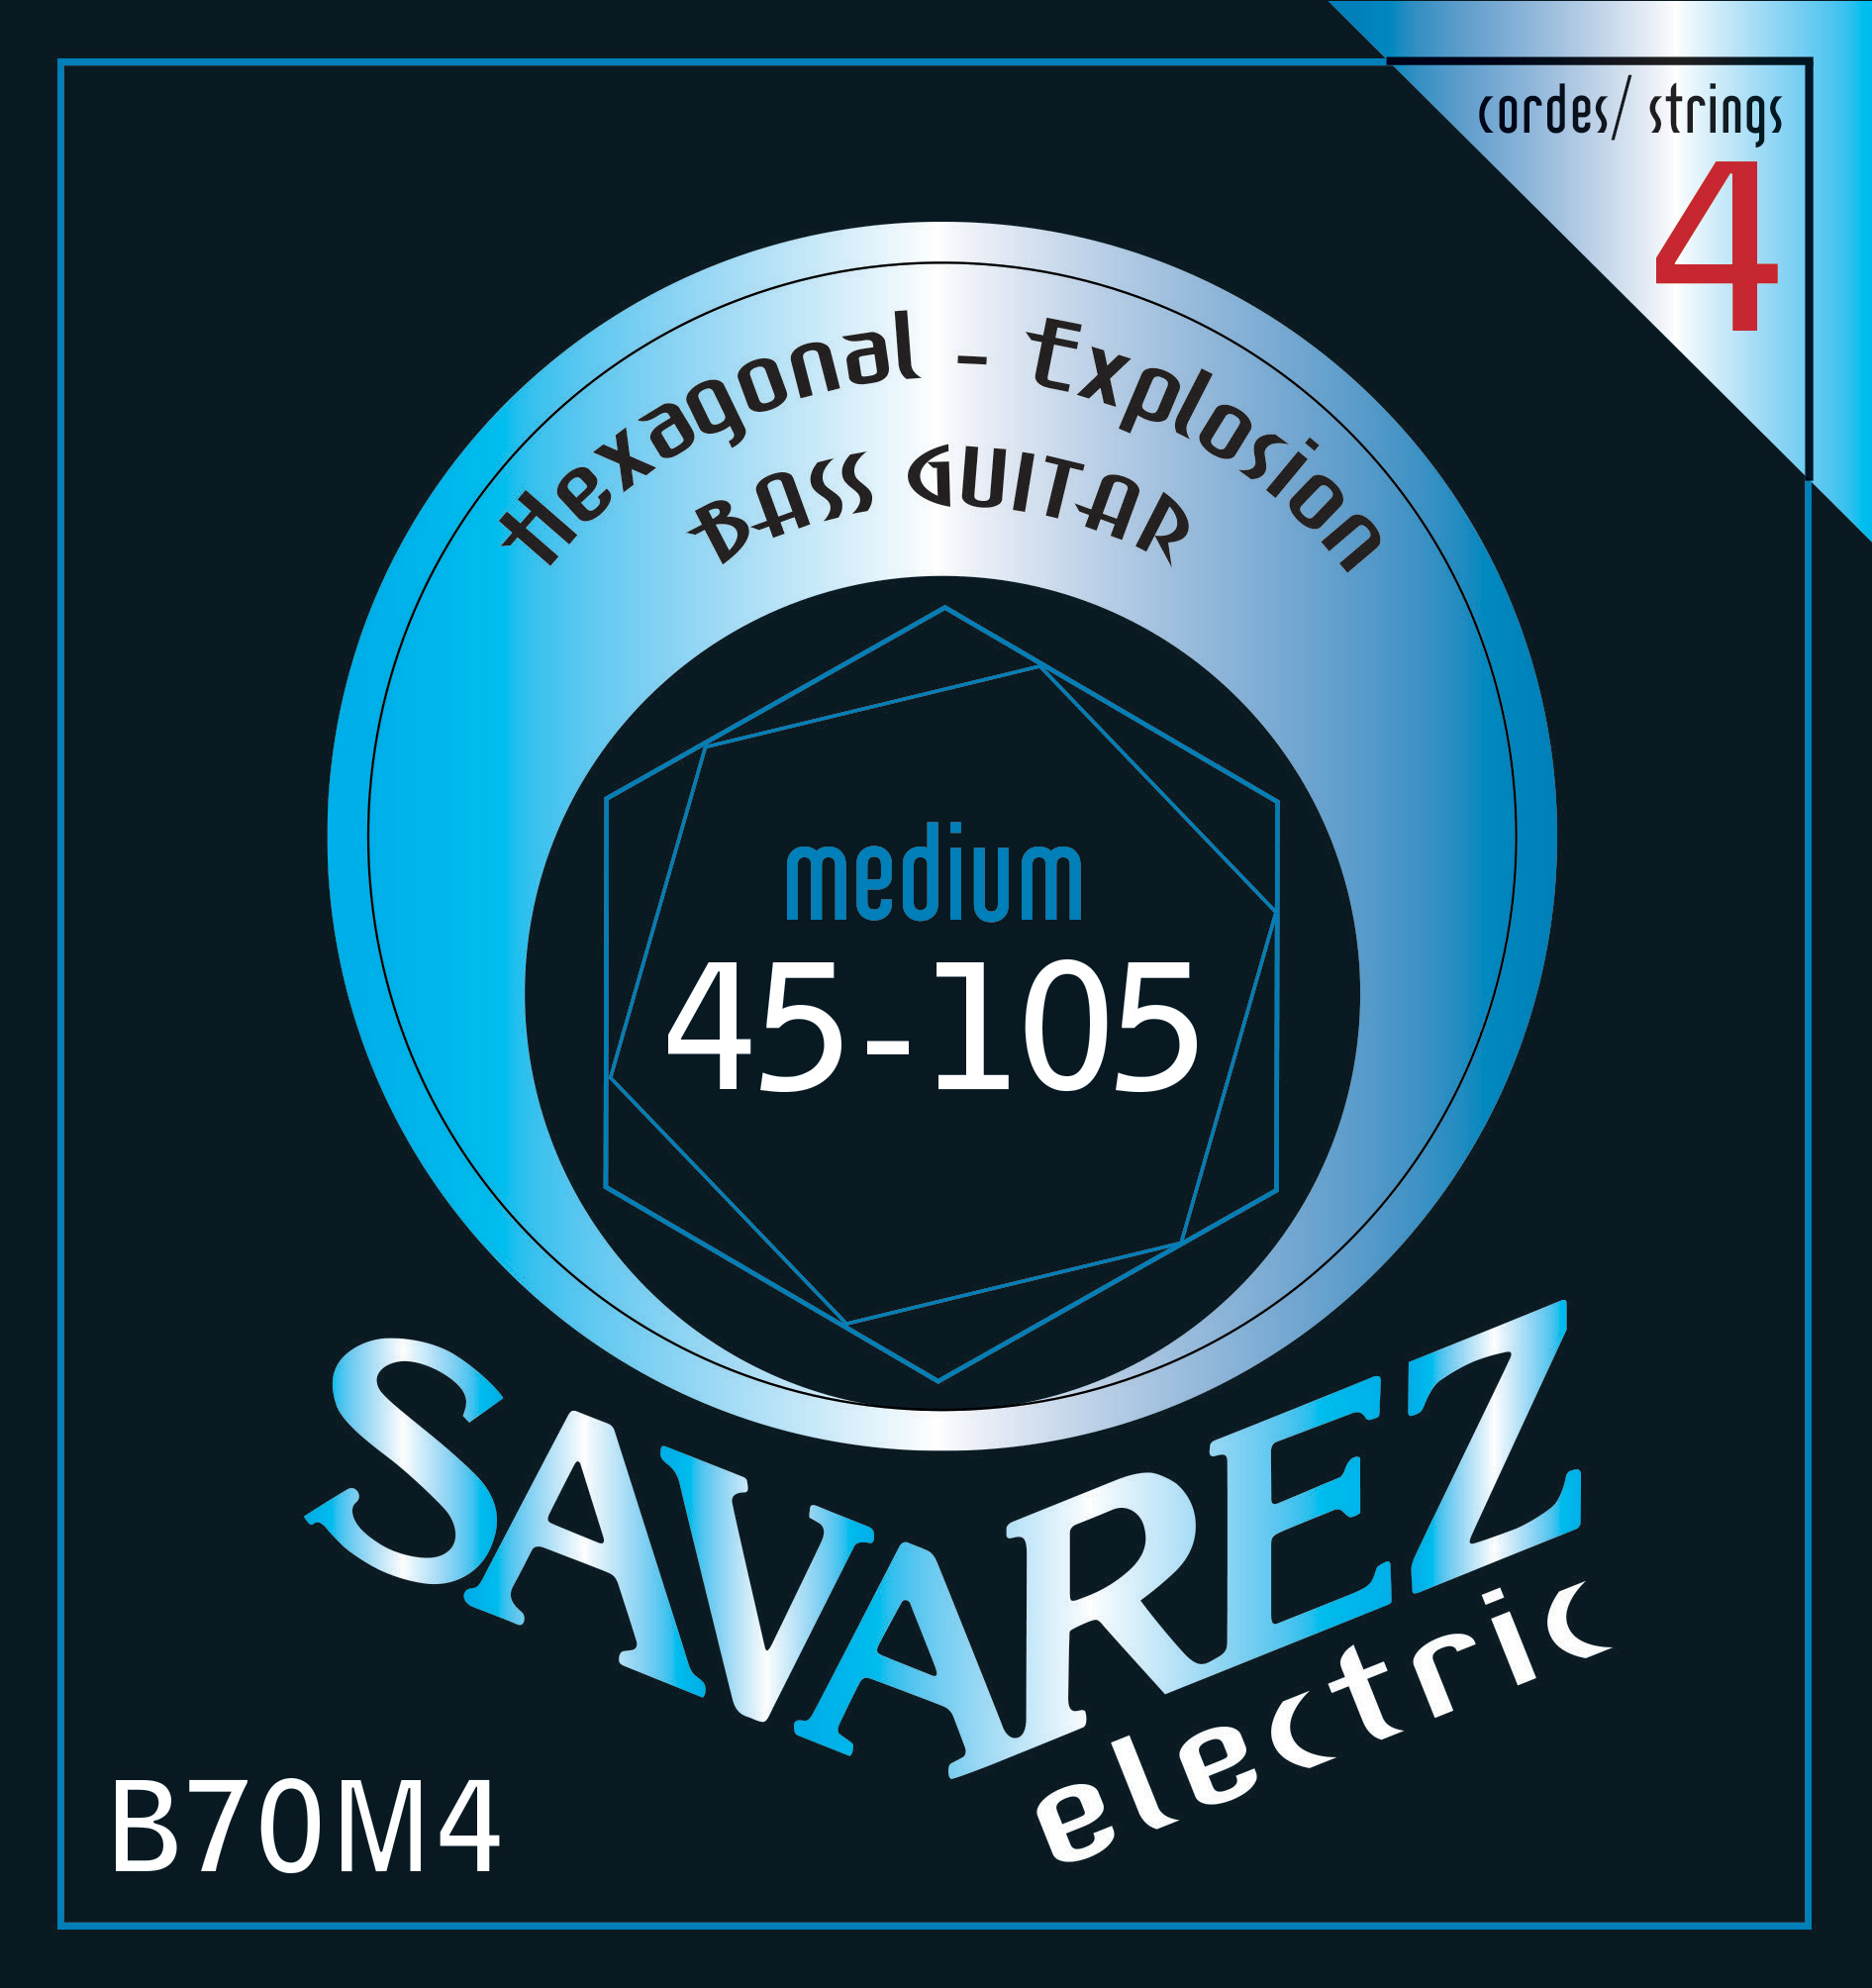 SAVAREZ ELECTRIC HEXAGONAL EXPLOSION BASSE B70M4